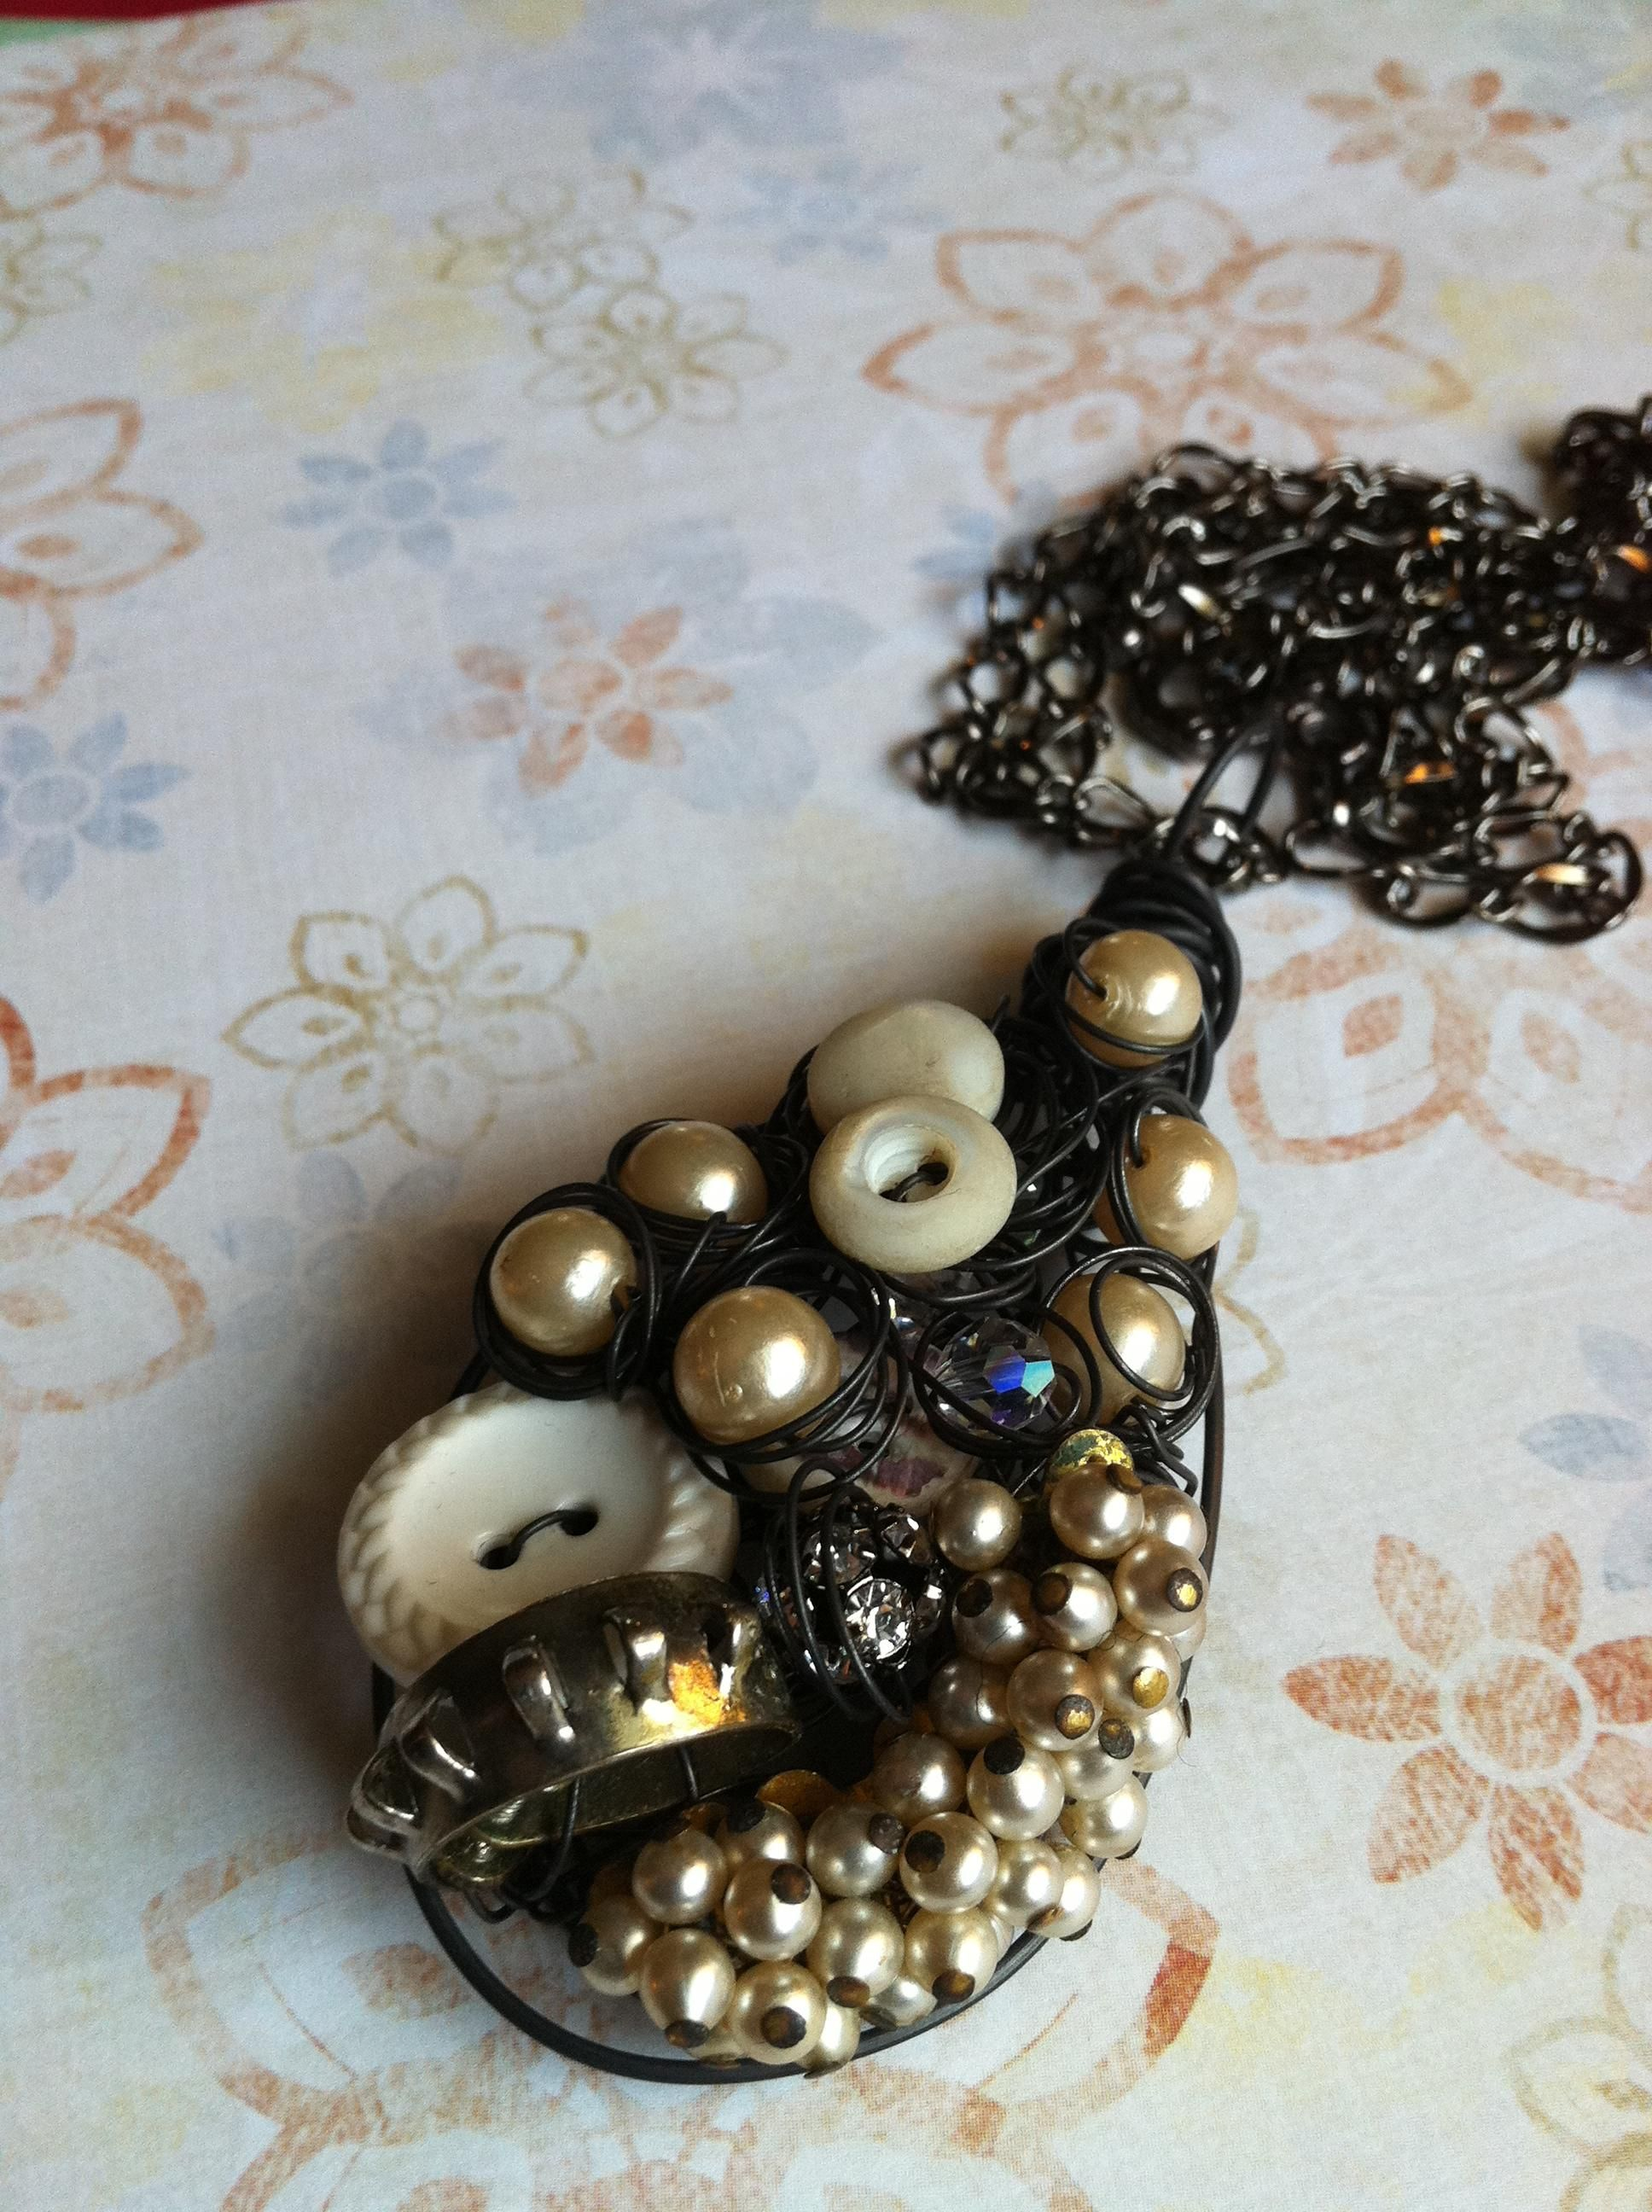 A multimedia pendant created with vintage elements for new trendy pleasure!